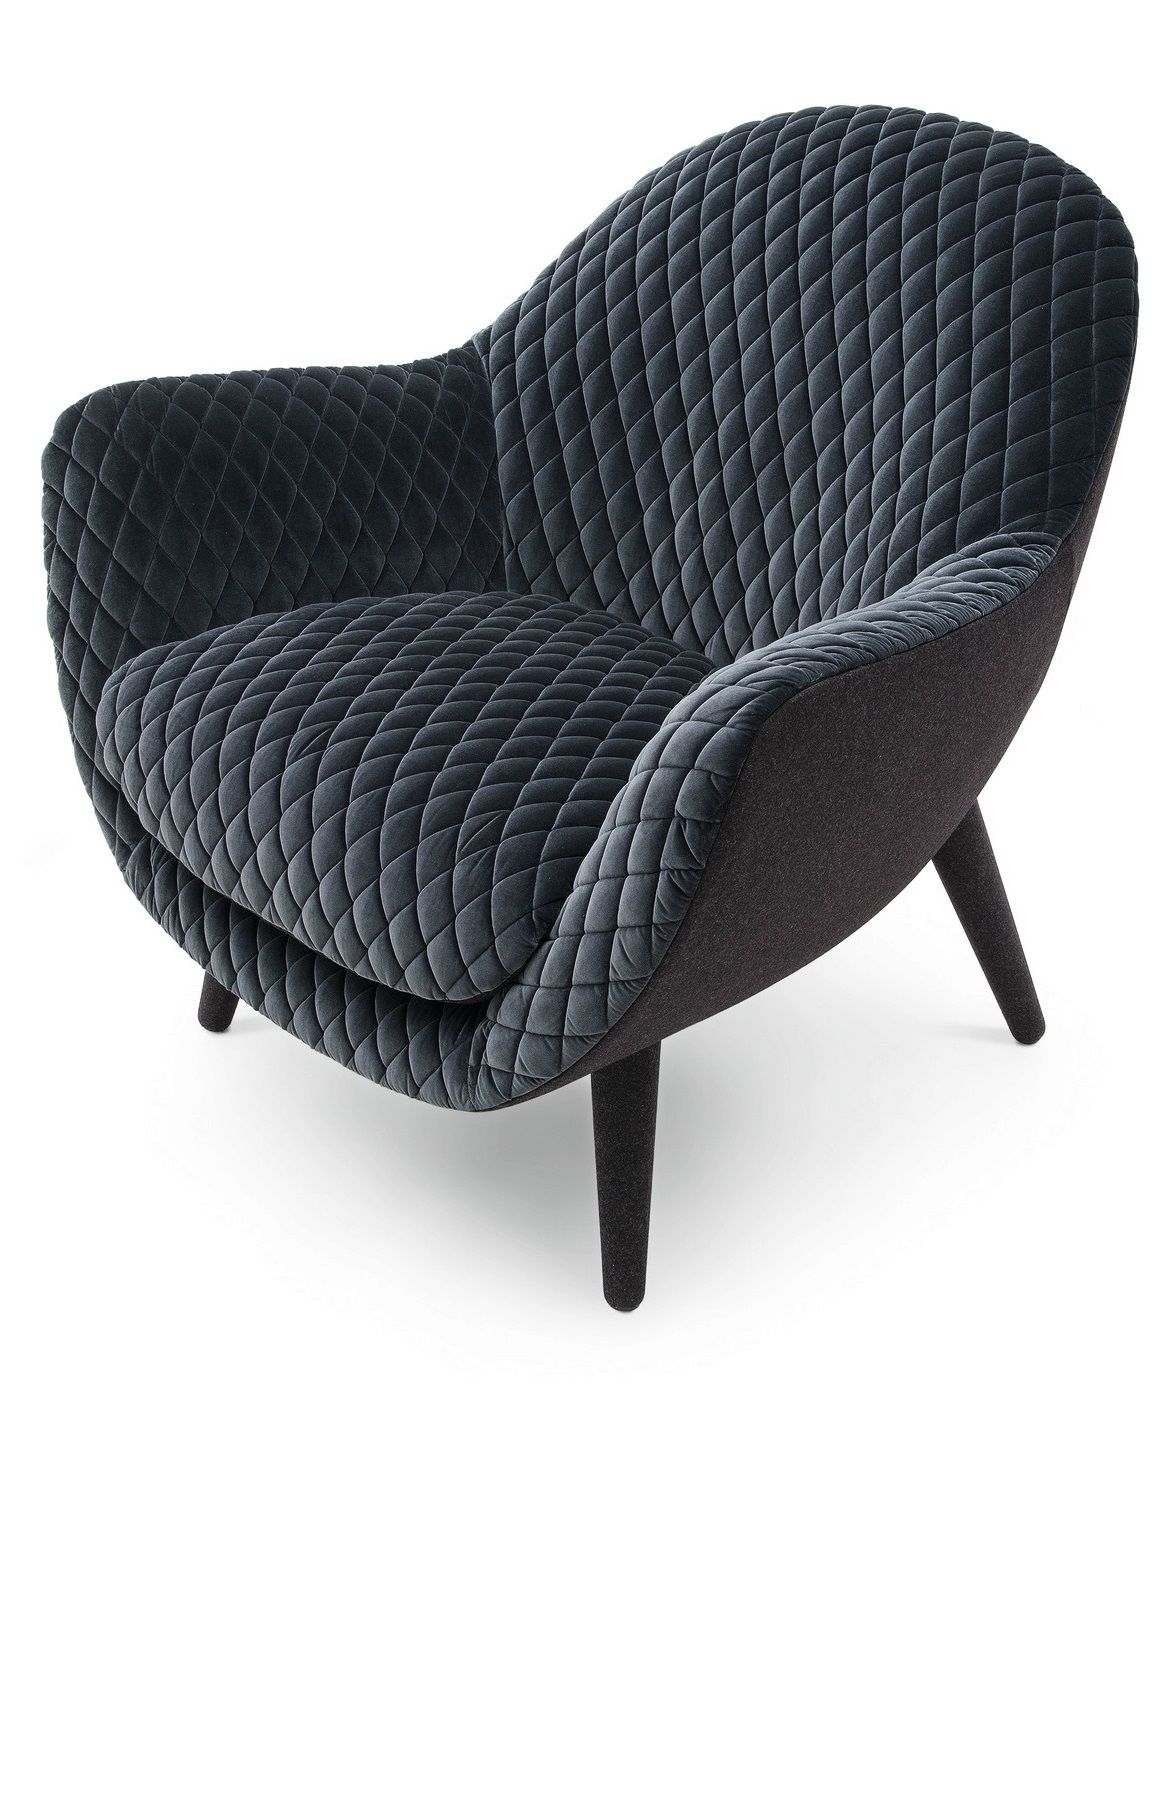 Mad Queen Chairmarcel Wanders For Poliform In Matelasse Gibson Regarding Gibson Swivel Cuddler Chairs (View 13 of 25)